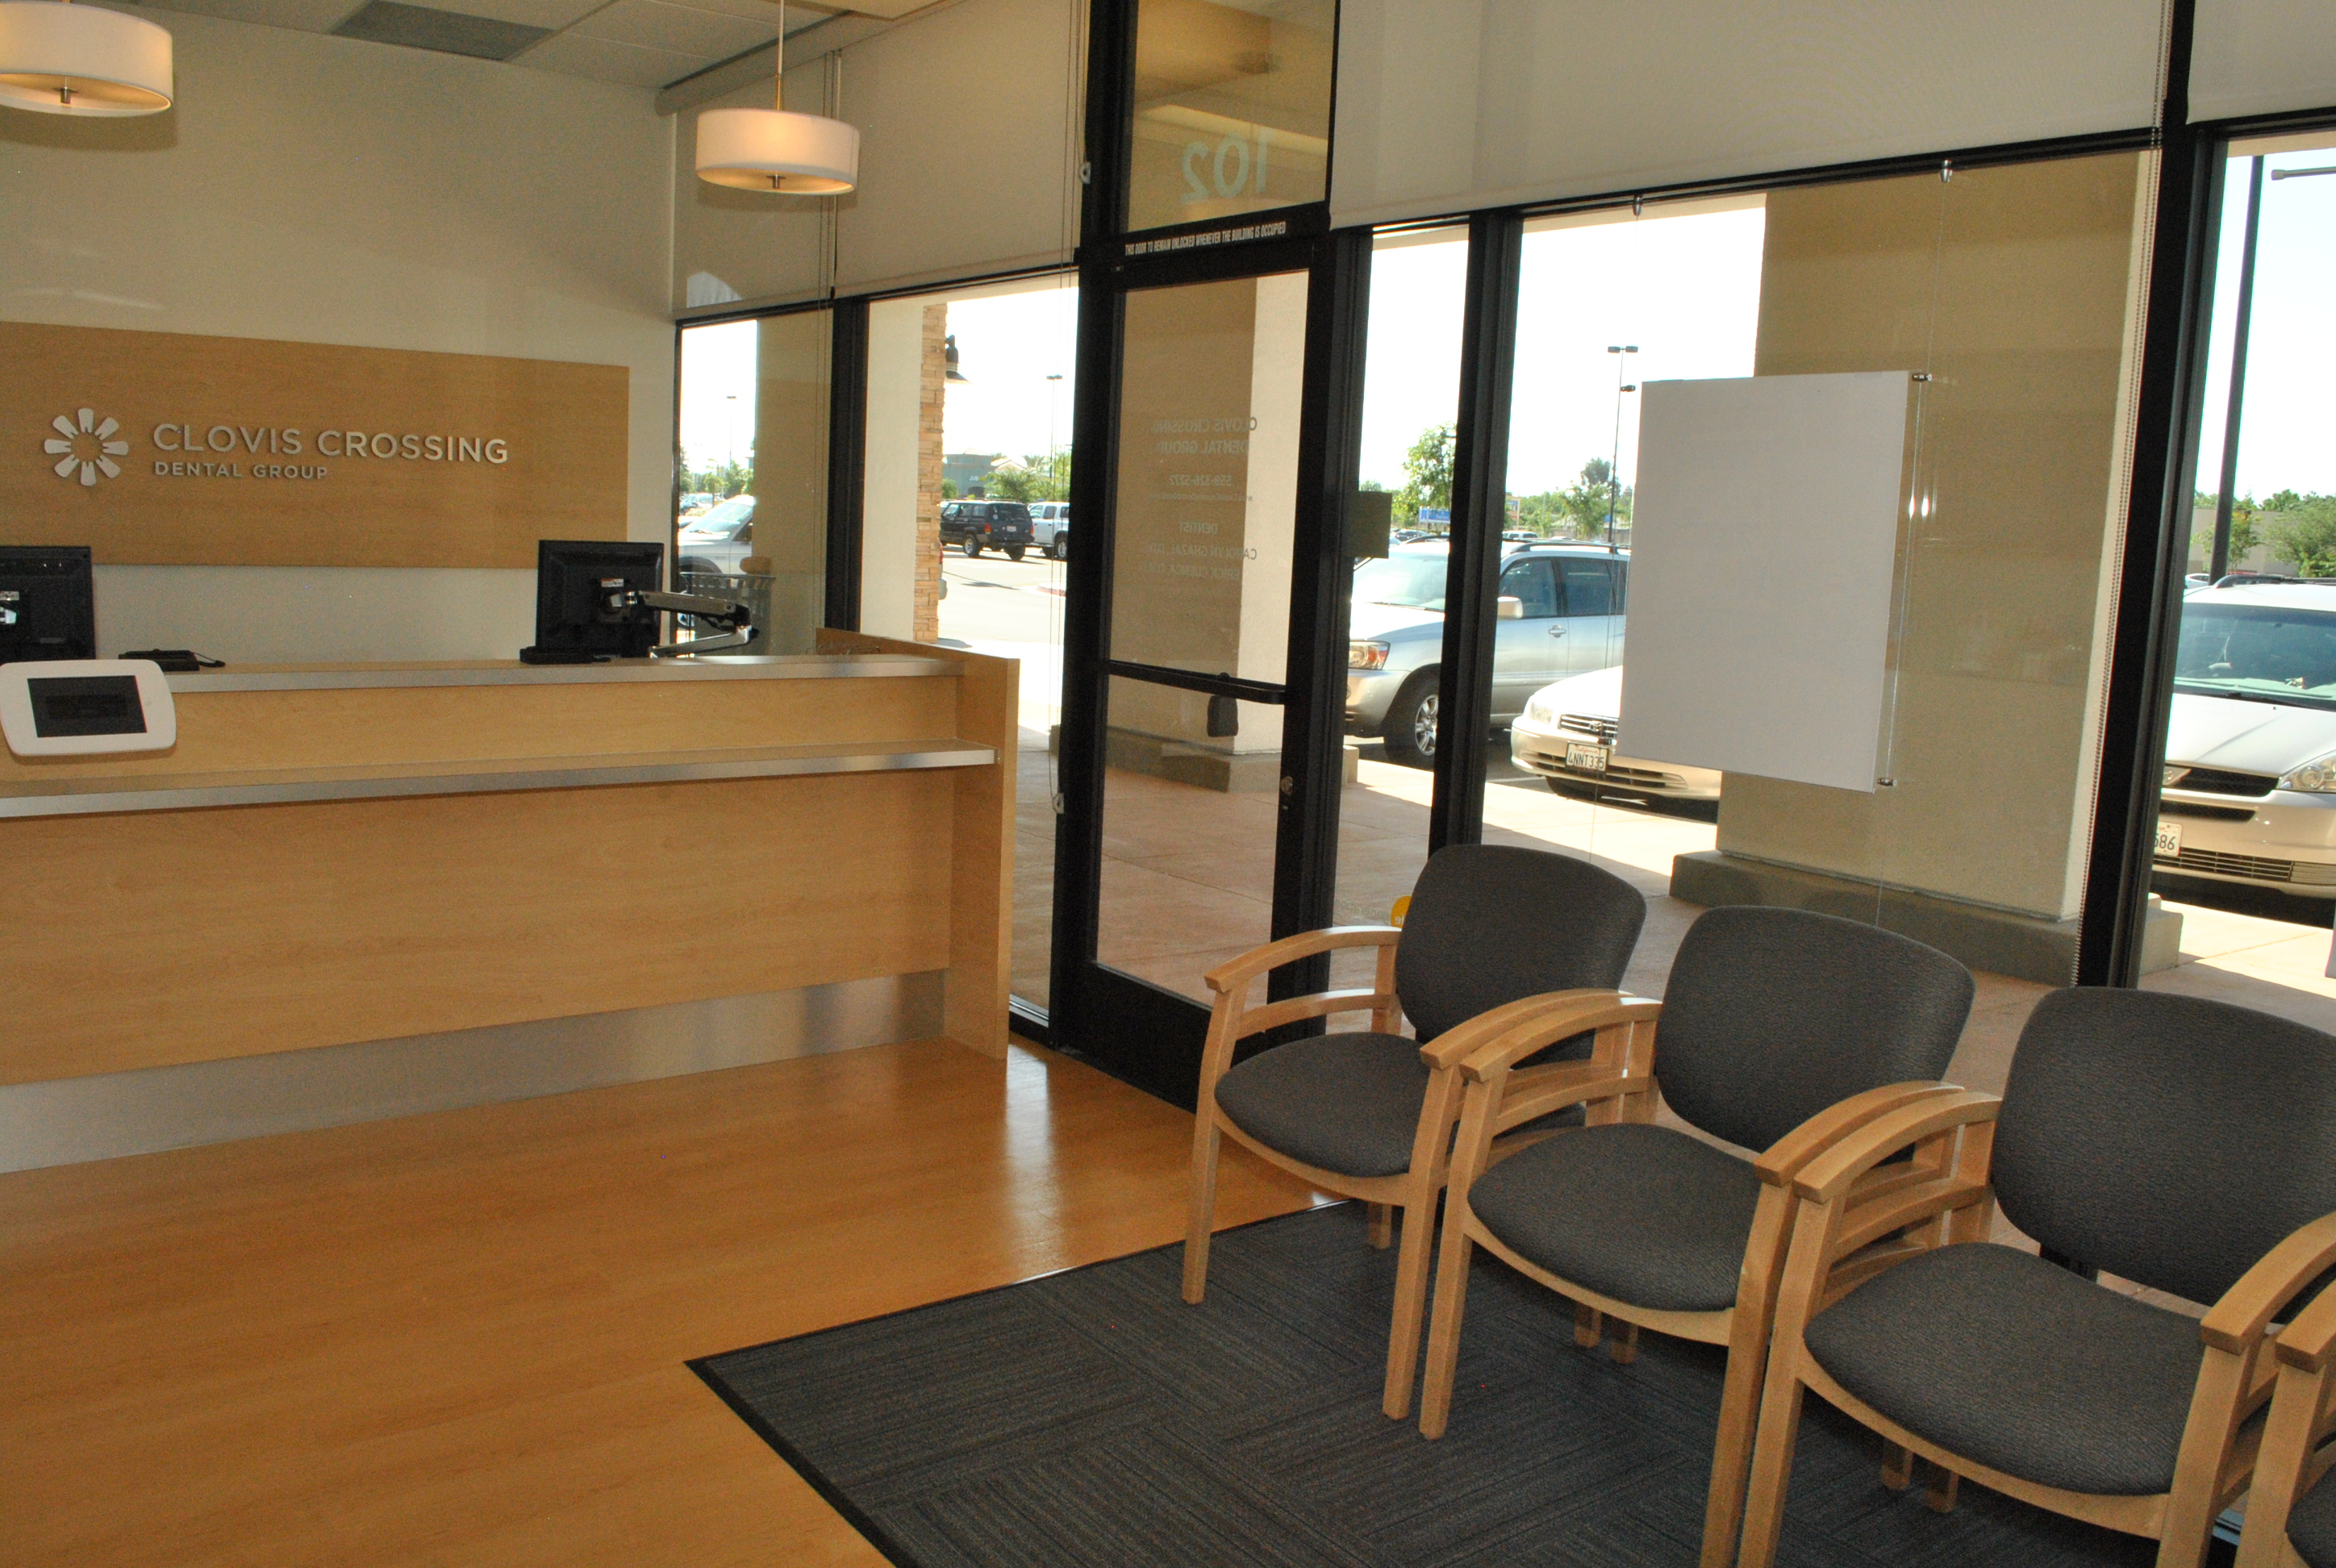 Clovis Crossing Dental Group and Orthodontics image 2